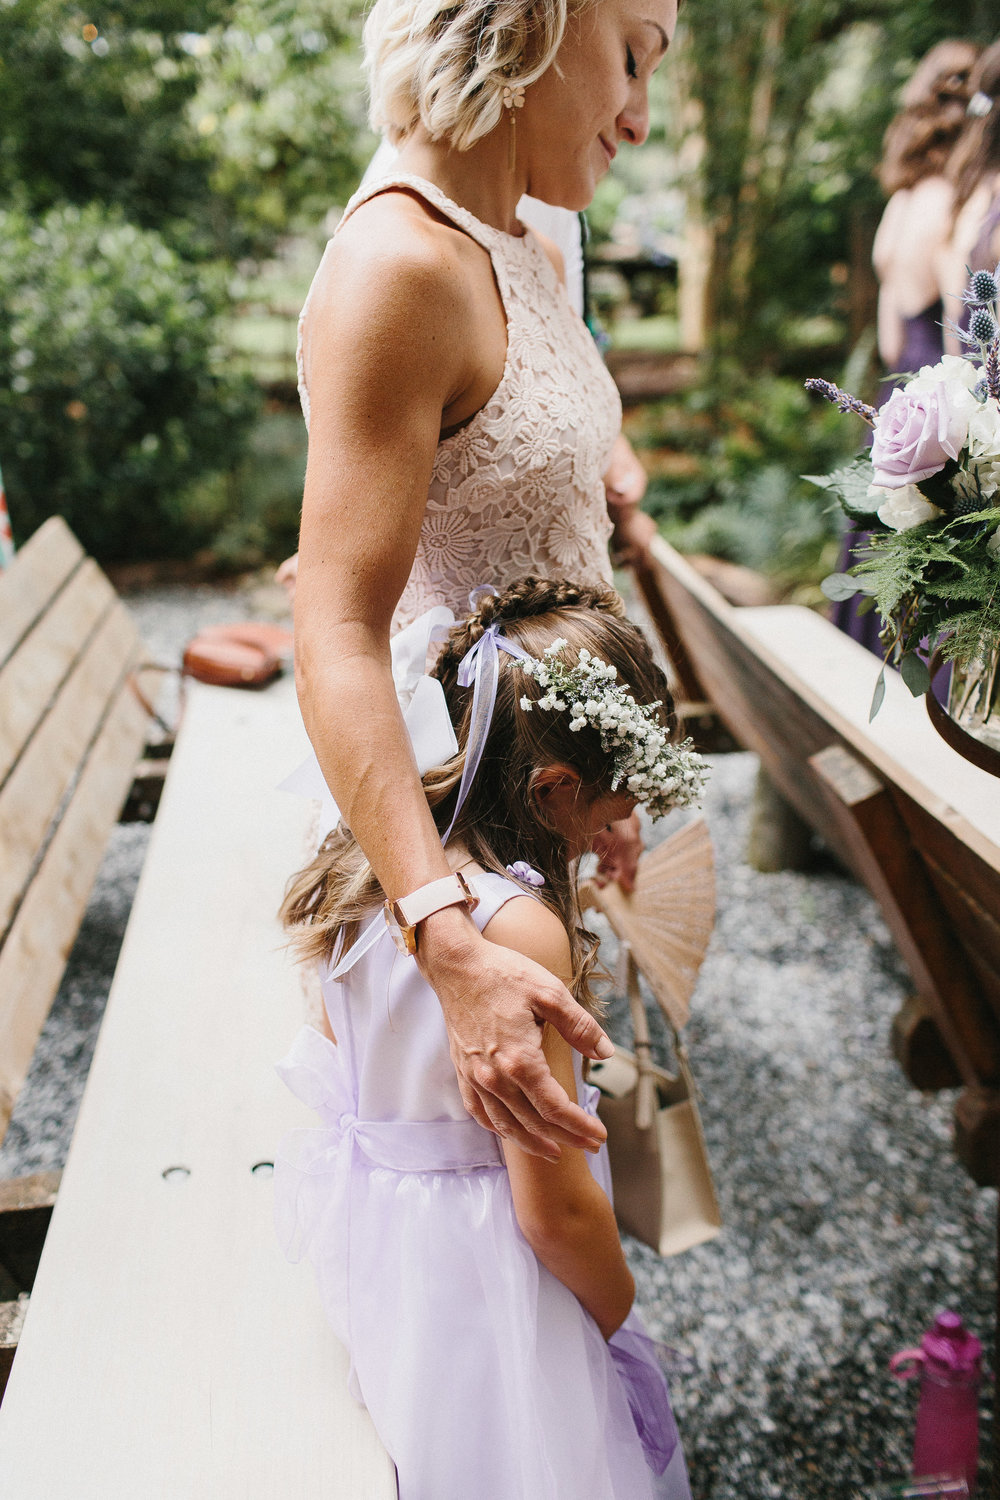 neverland_farms_atlanta_wedding_photographer_documentary_river_west_1794.jpg